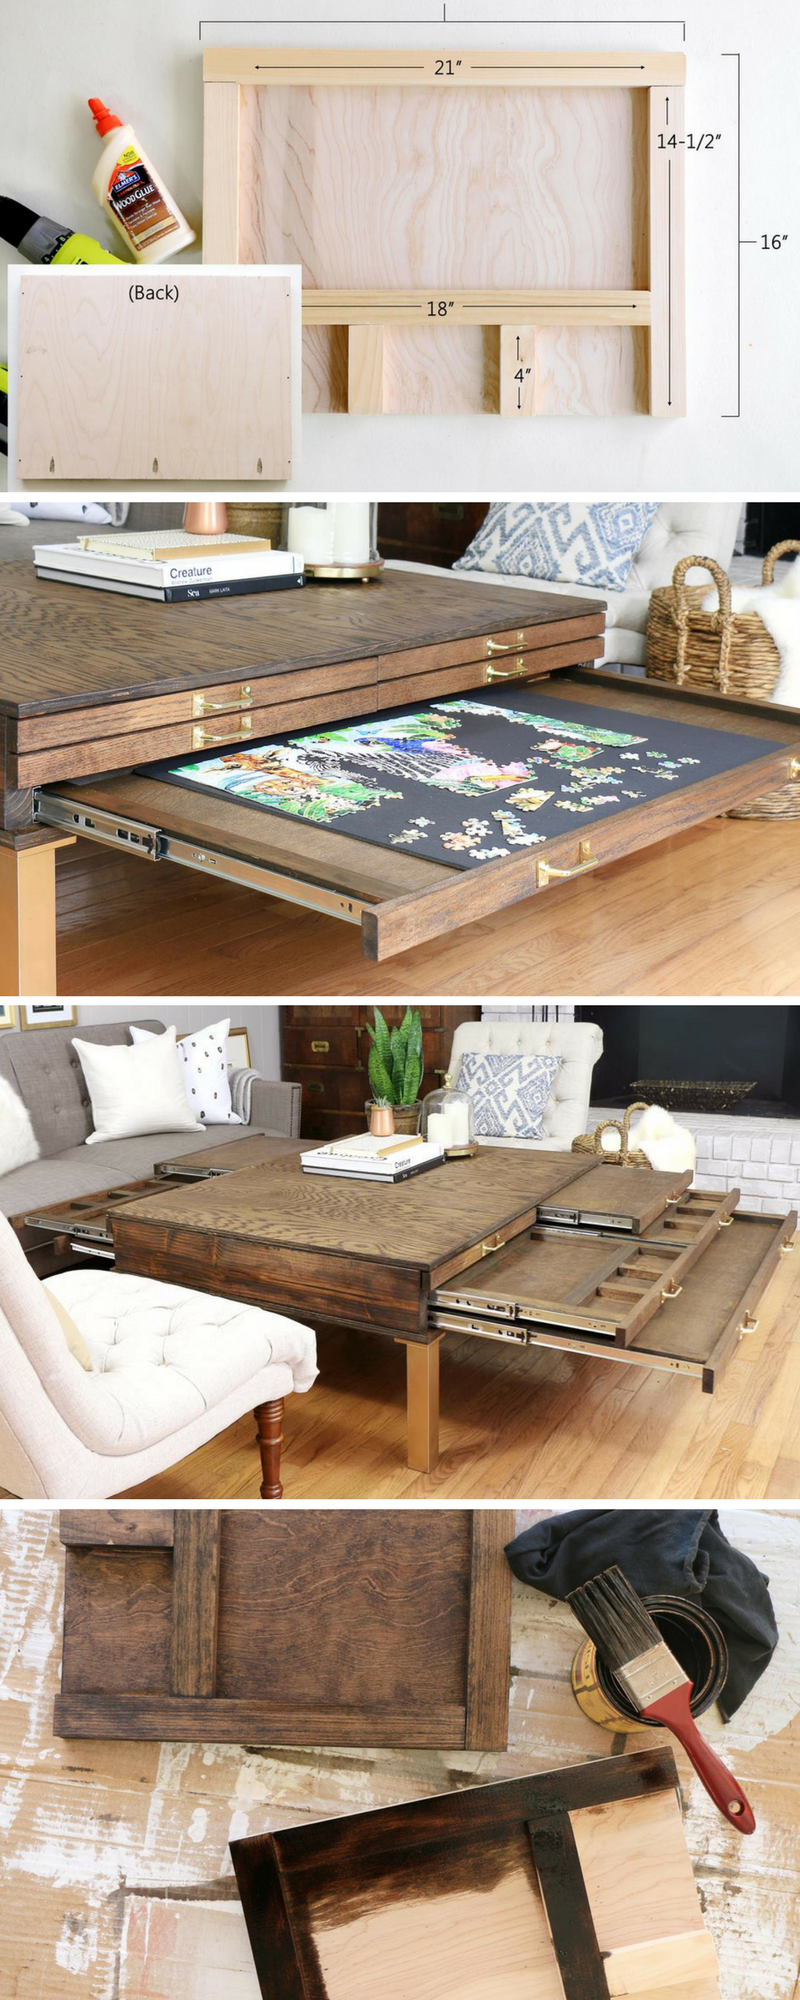 How To Build A Diy Coffee Table With Pullouts For Board Games Free Project Plan Via Homemade By Diy Coffee Table Woodworking Projects Diy Carpentry Projects